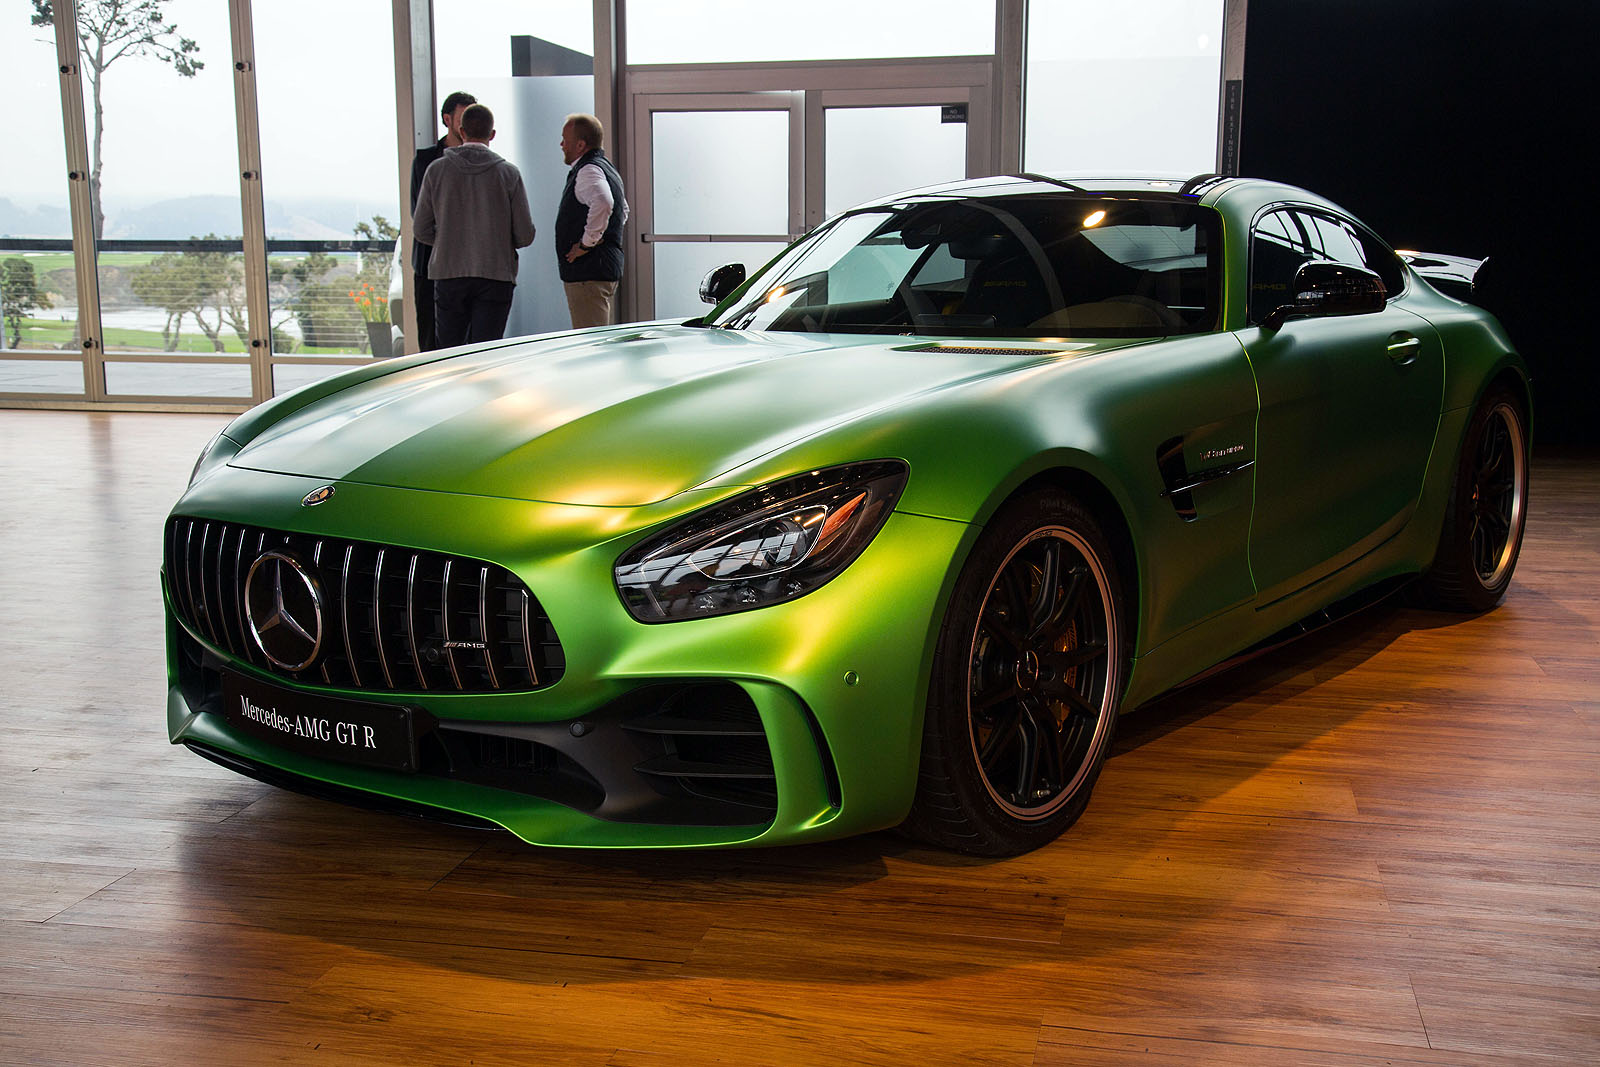 Beach Ford Service >> Mercedes-AMG GT R Stands Out Among Supercars During US ...